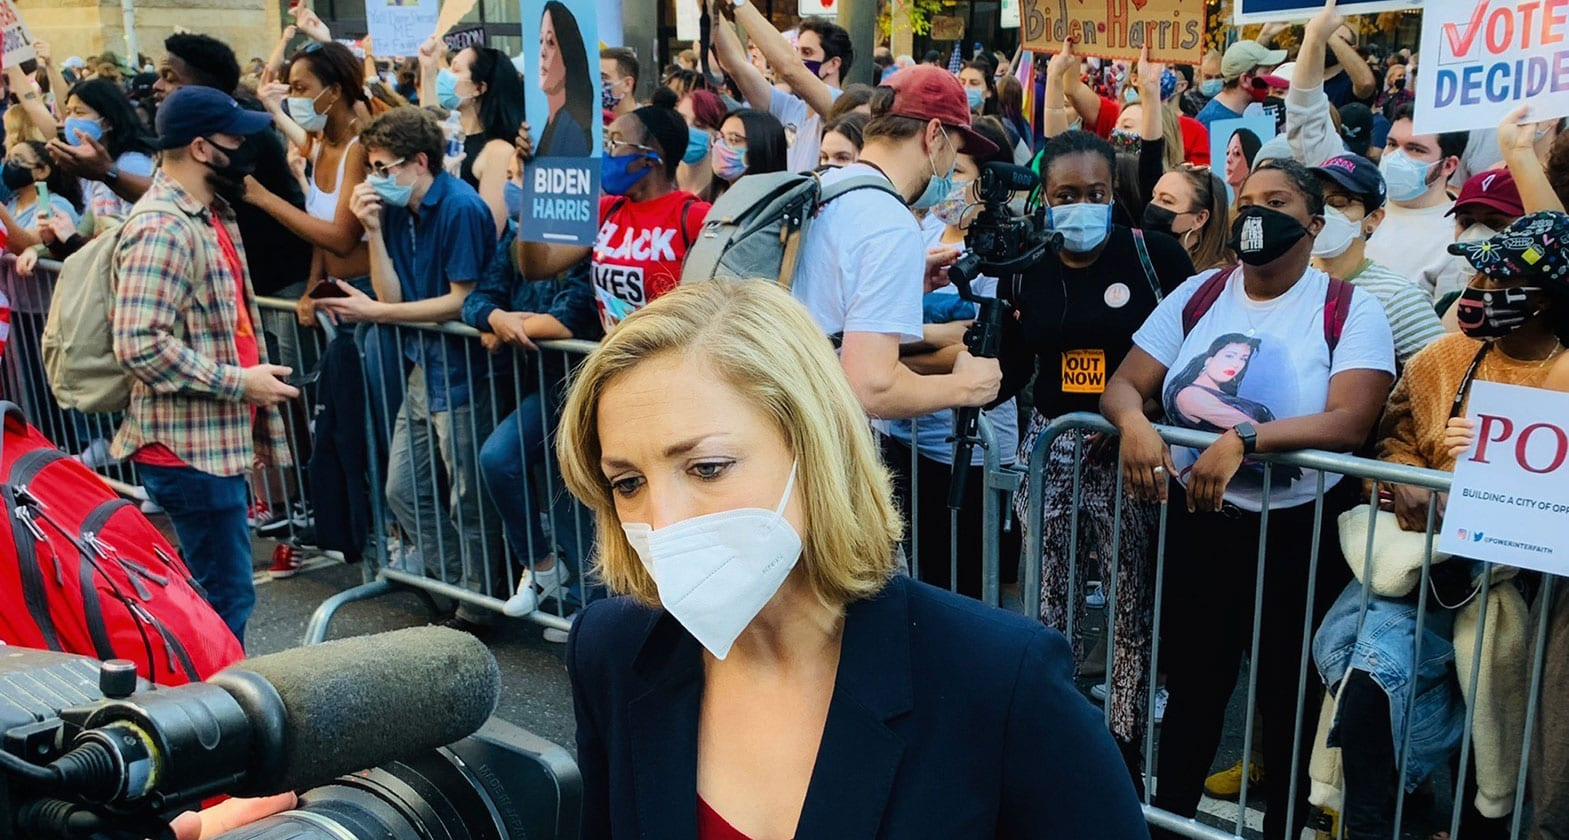 Kathryn Diss covering protests over the election result in Philadelphia, Pennsylvania.